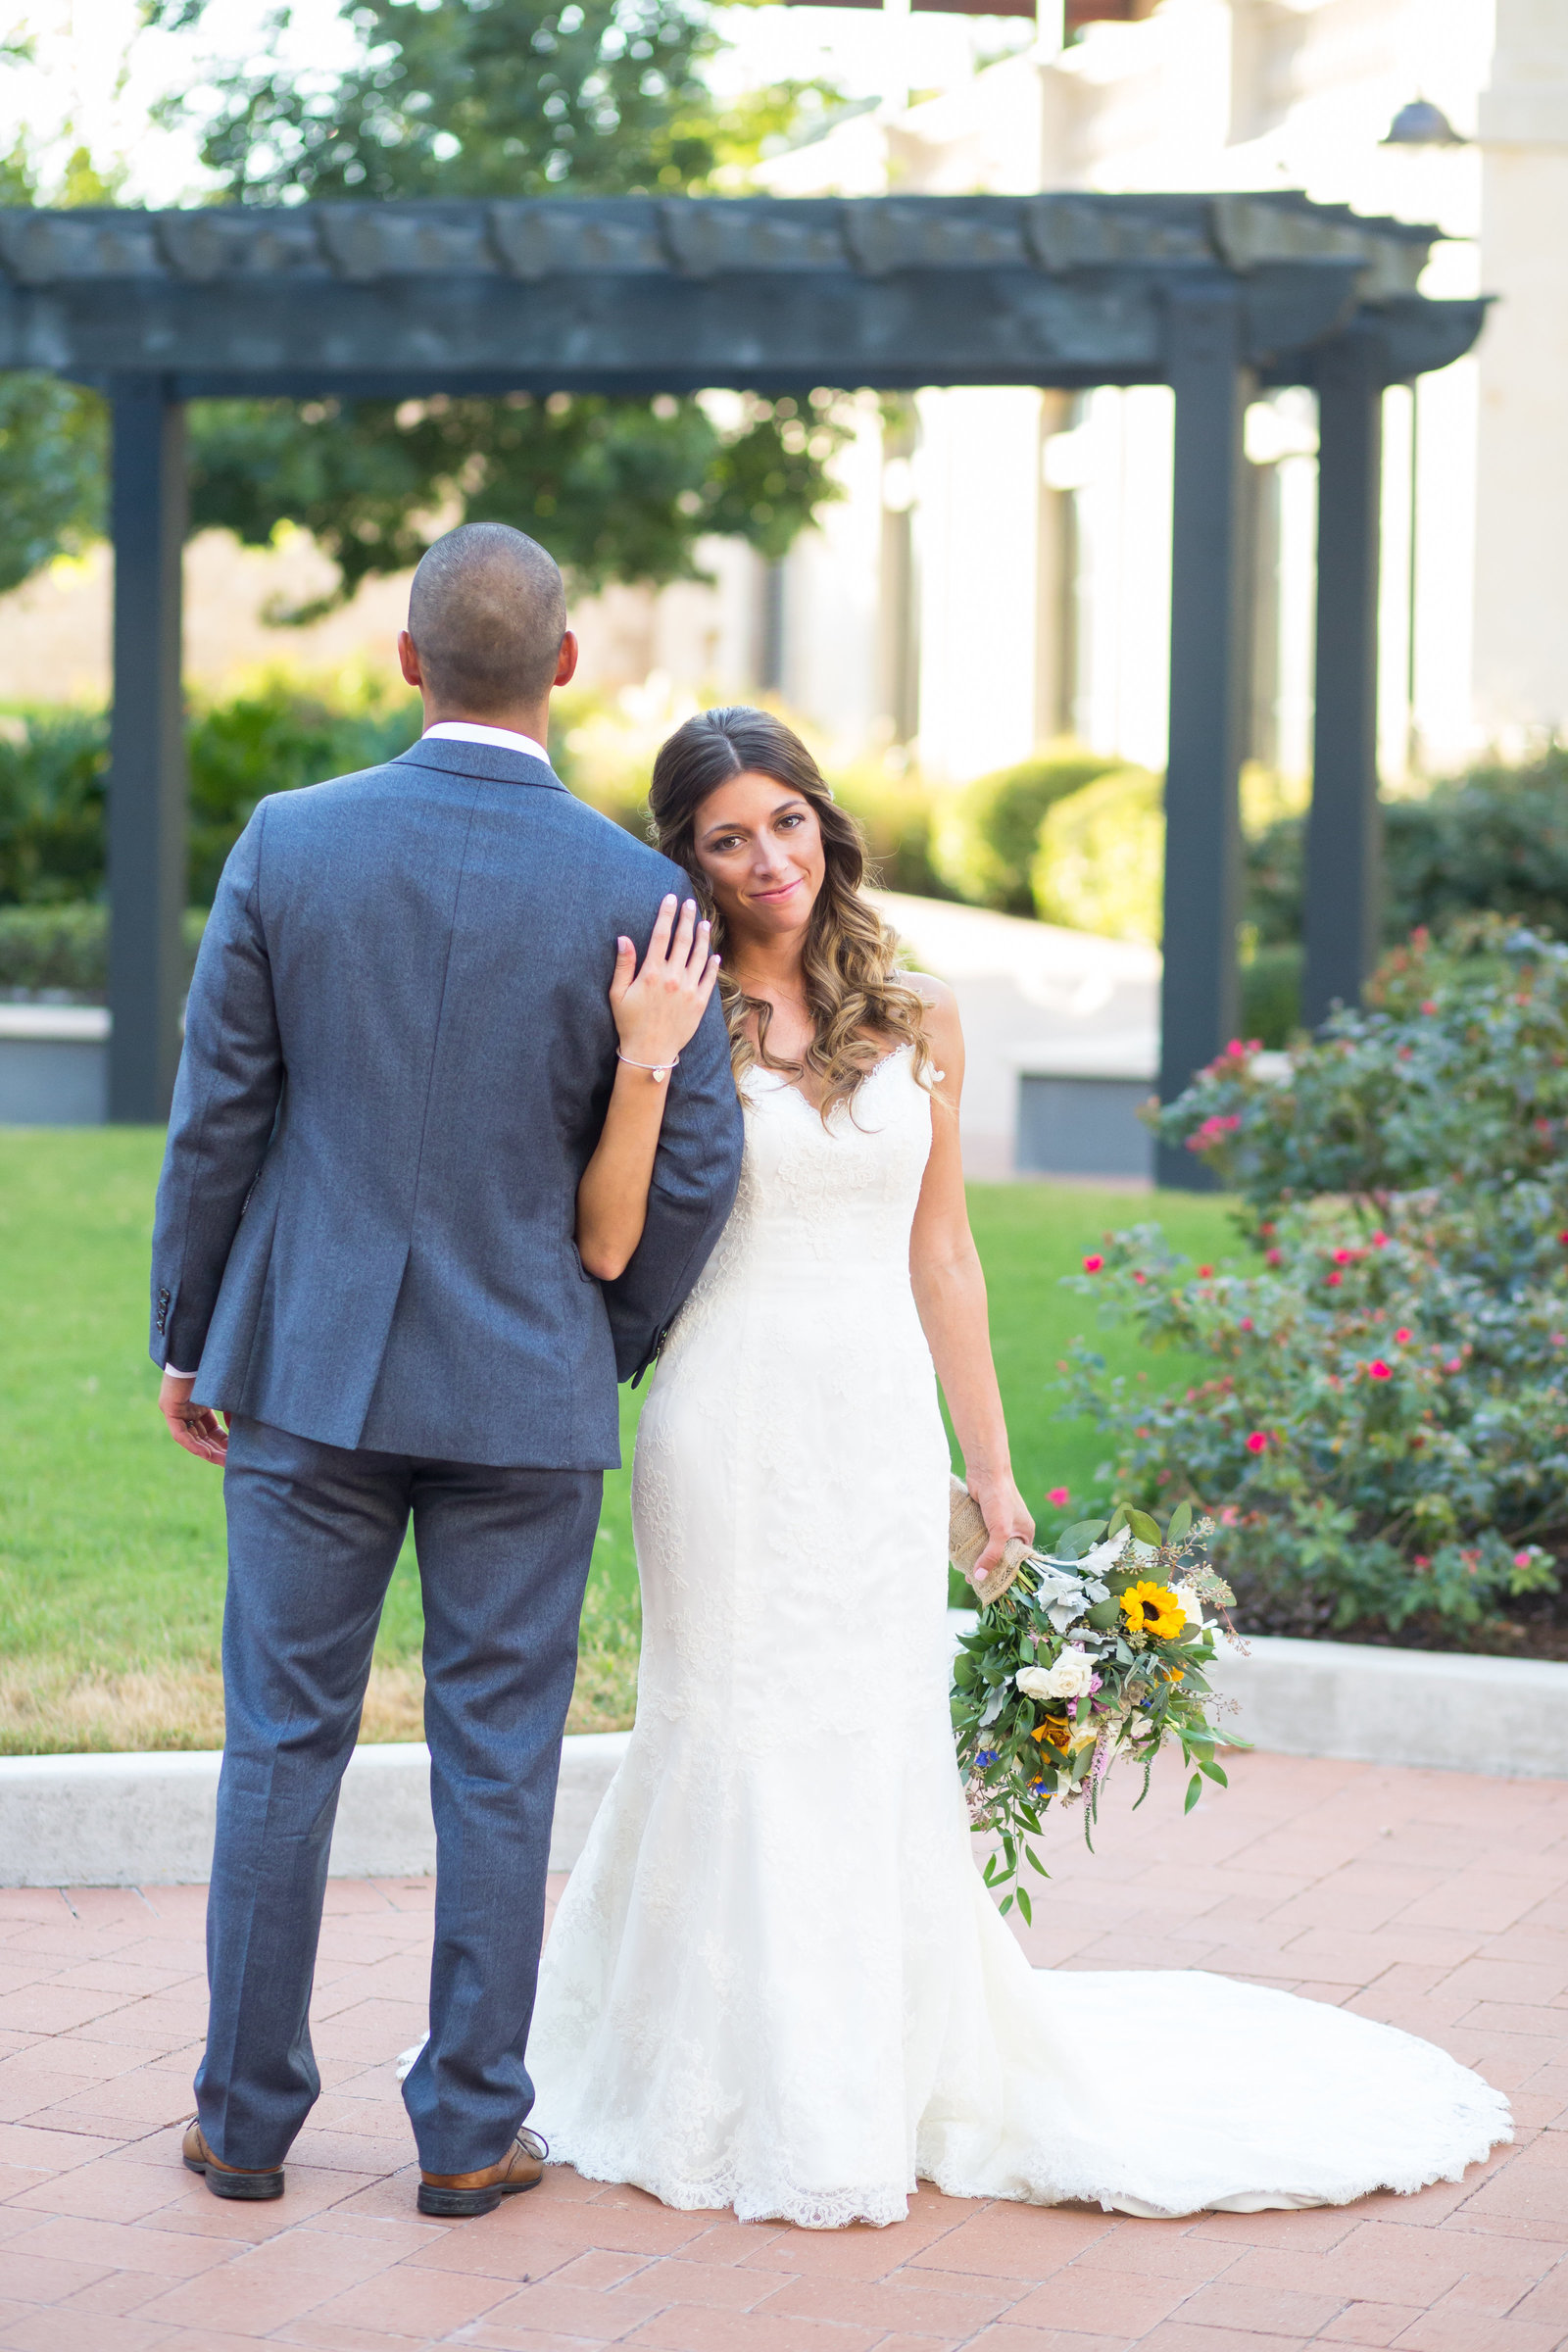 piatti-eilan-san-antonio-texas-wedding-bridal-oak-hills-church-photo-504